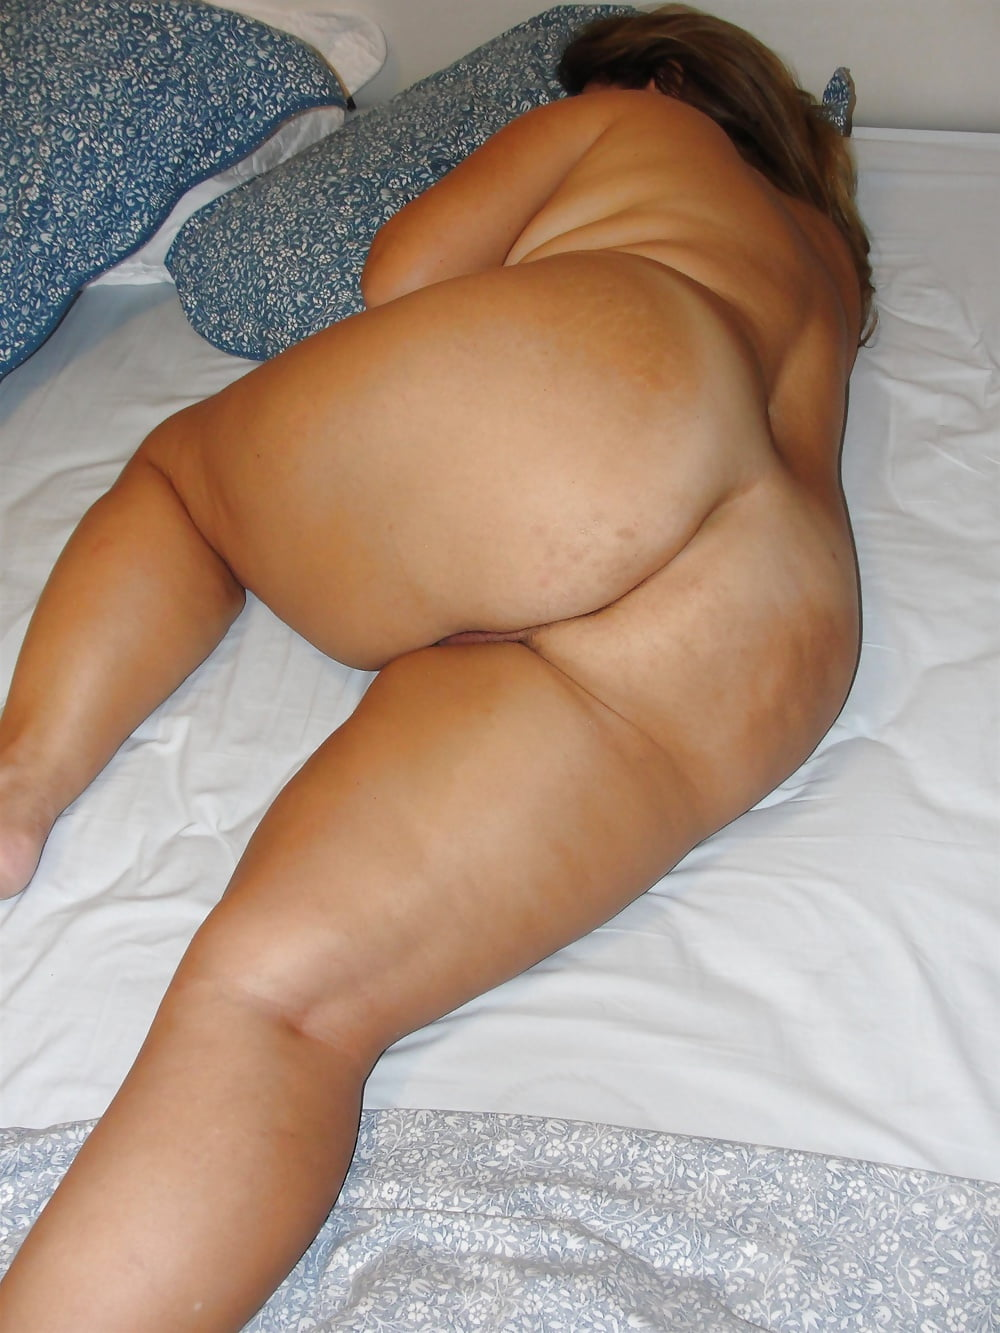 Fat black women sleeping nude — pic 1